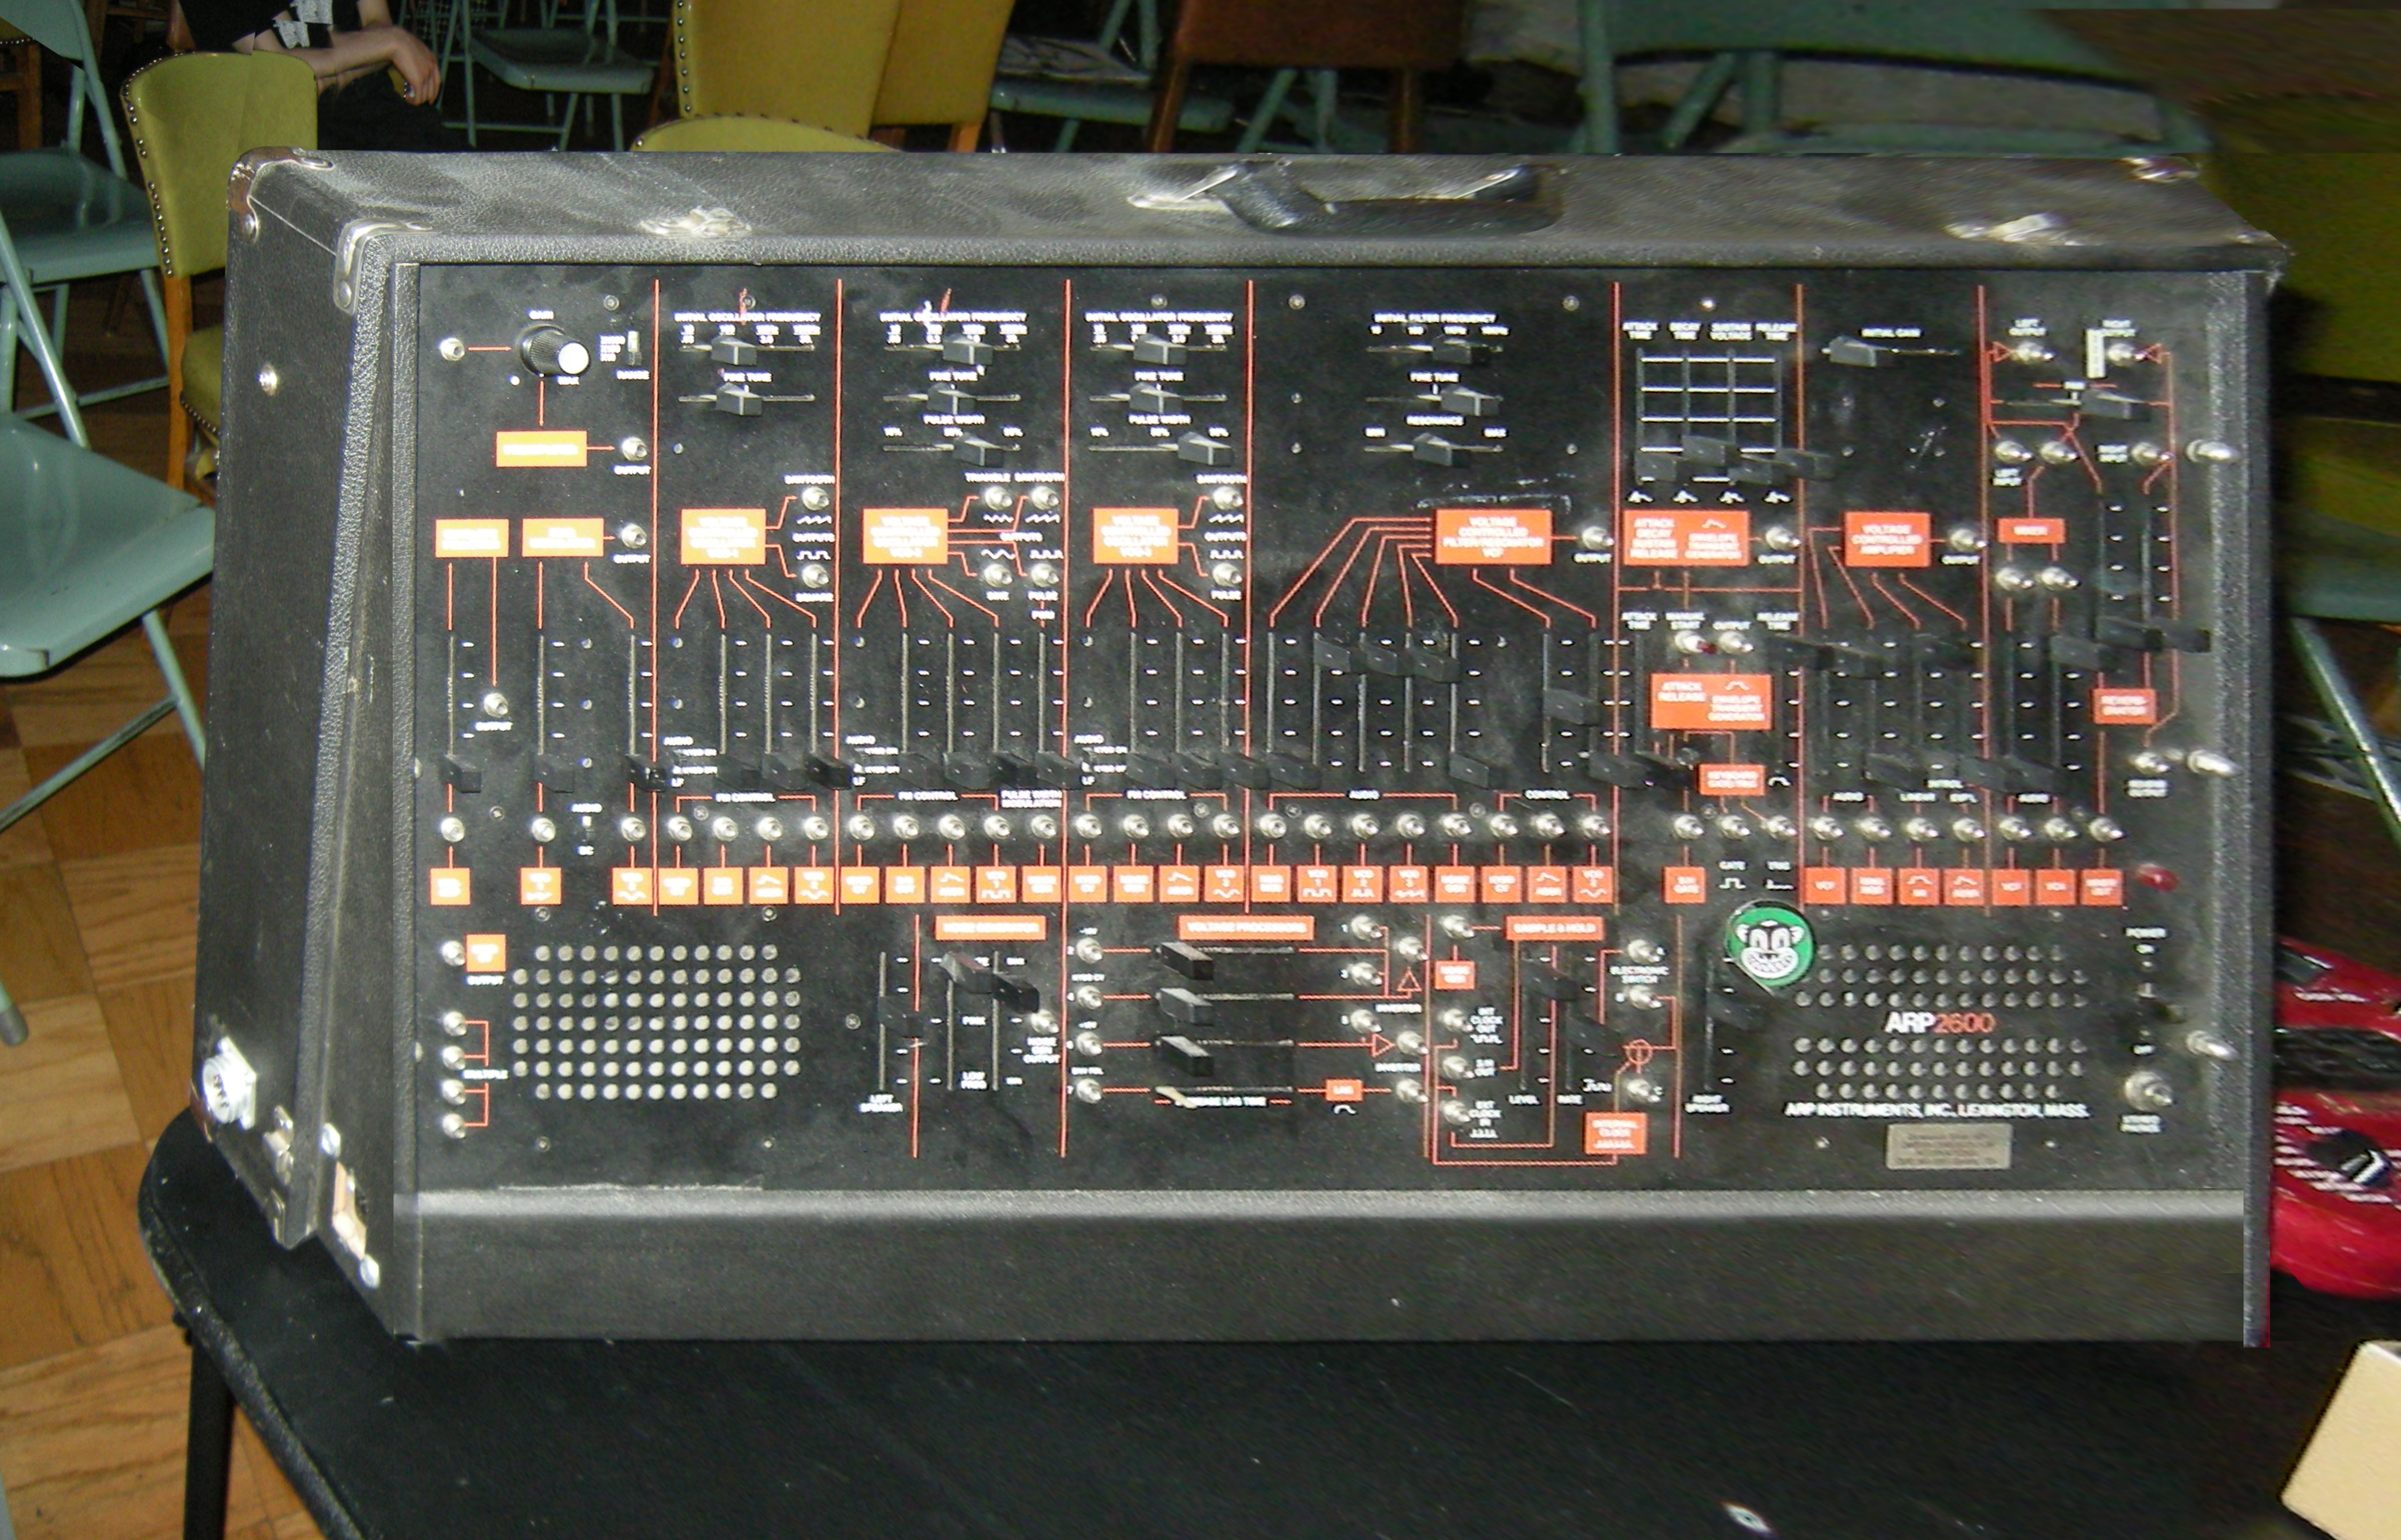 File:ARP 2601 v2.0 or v3.0 black-on-orange